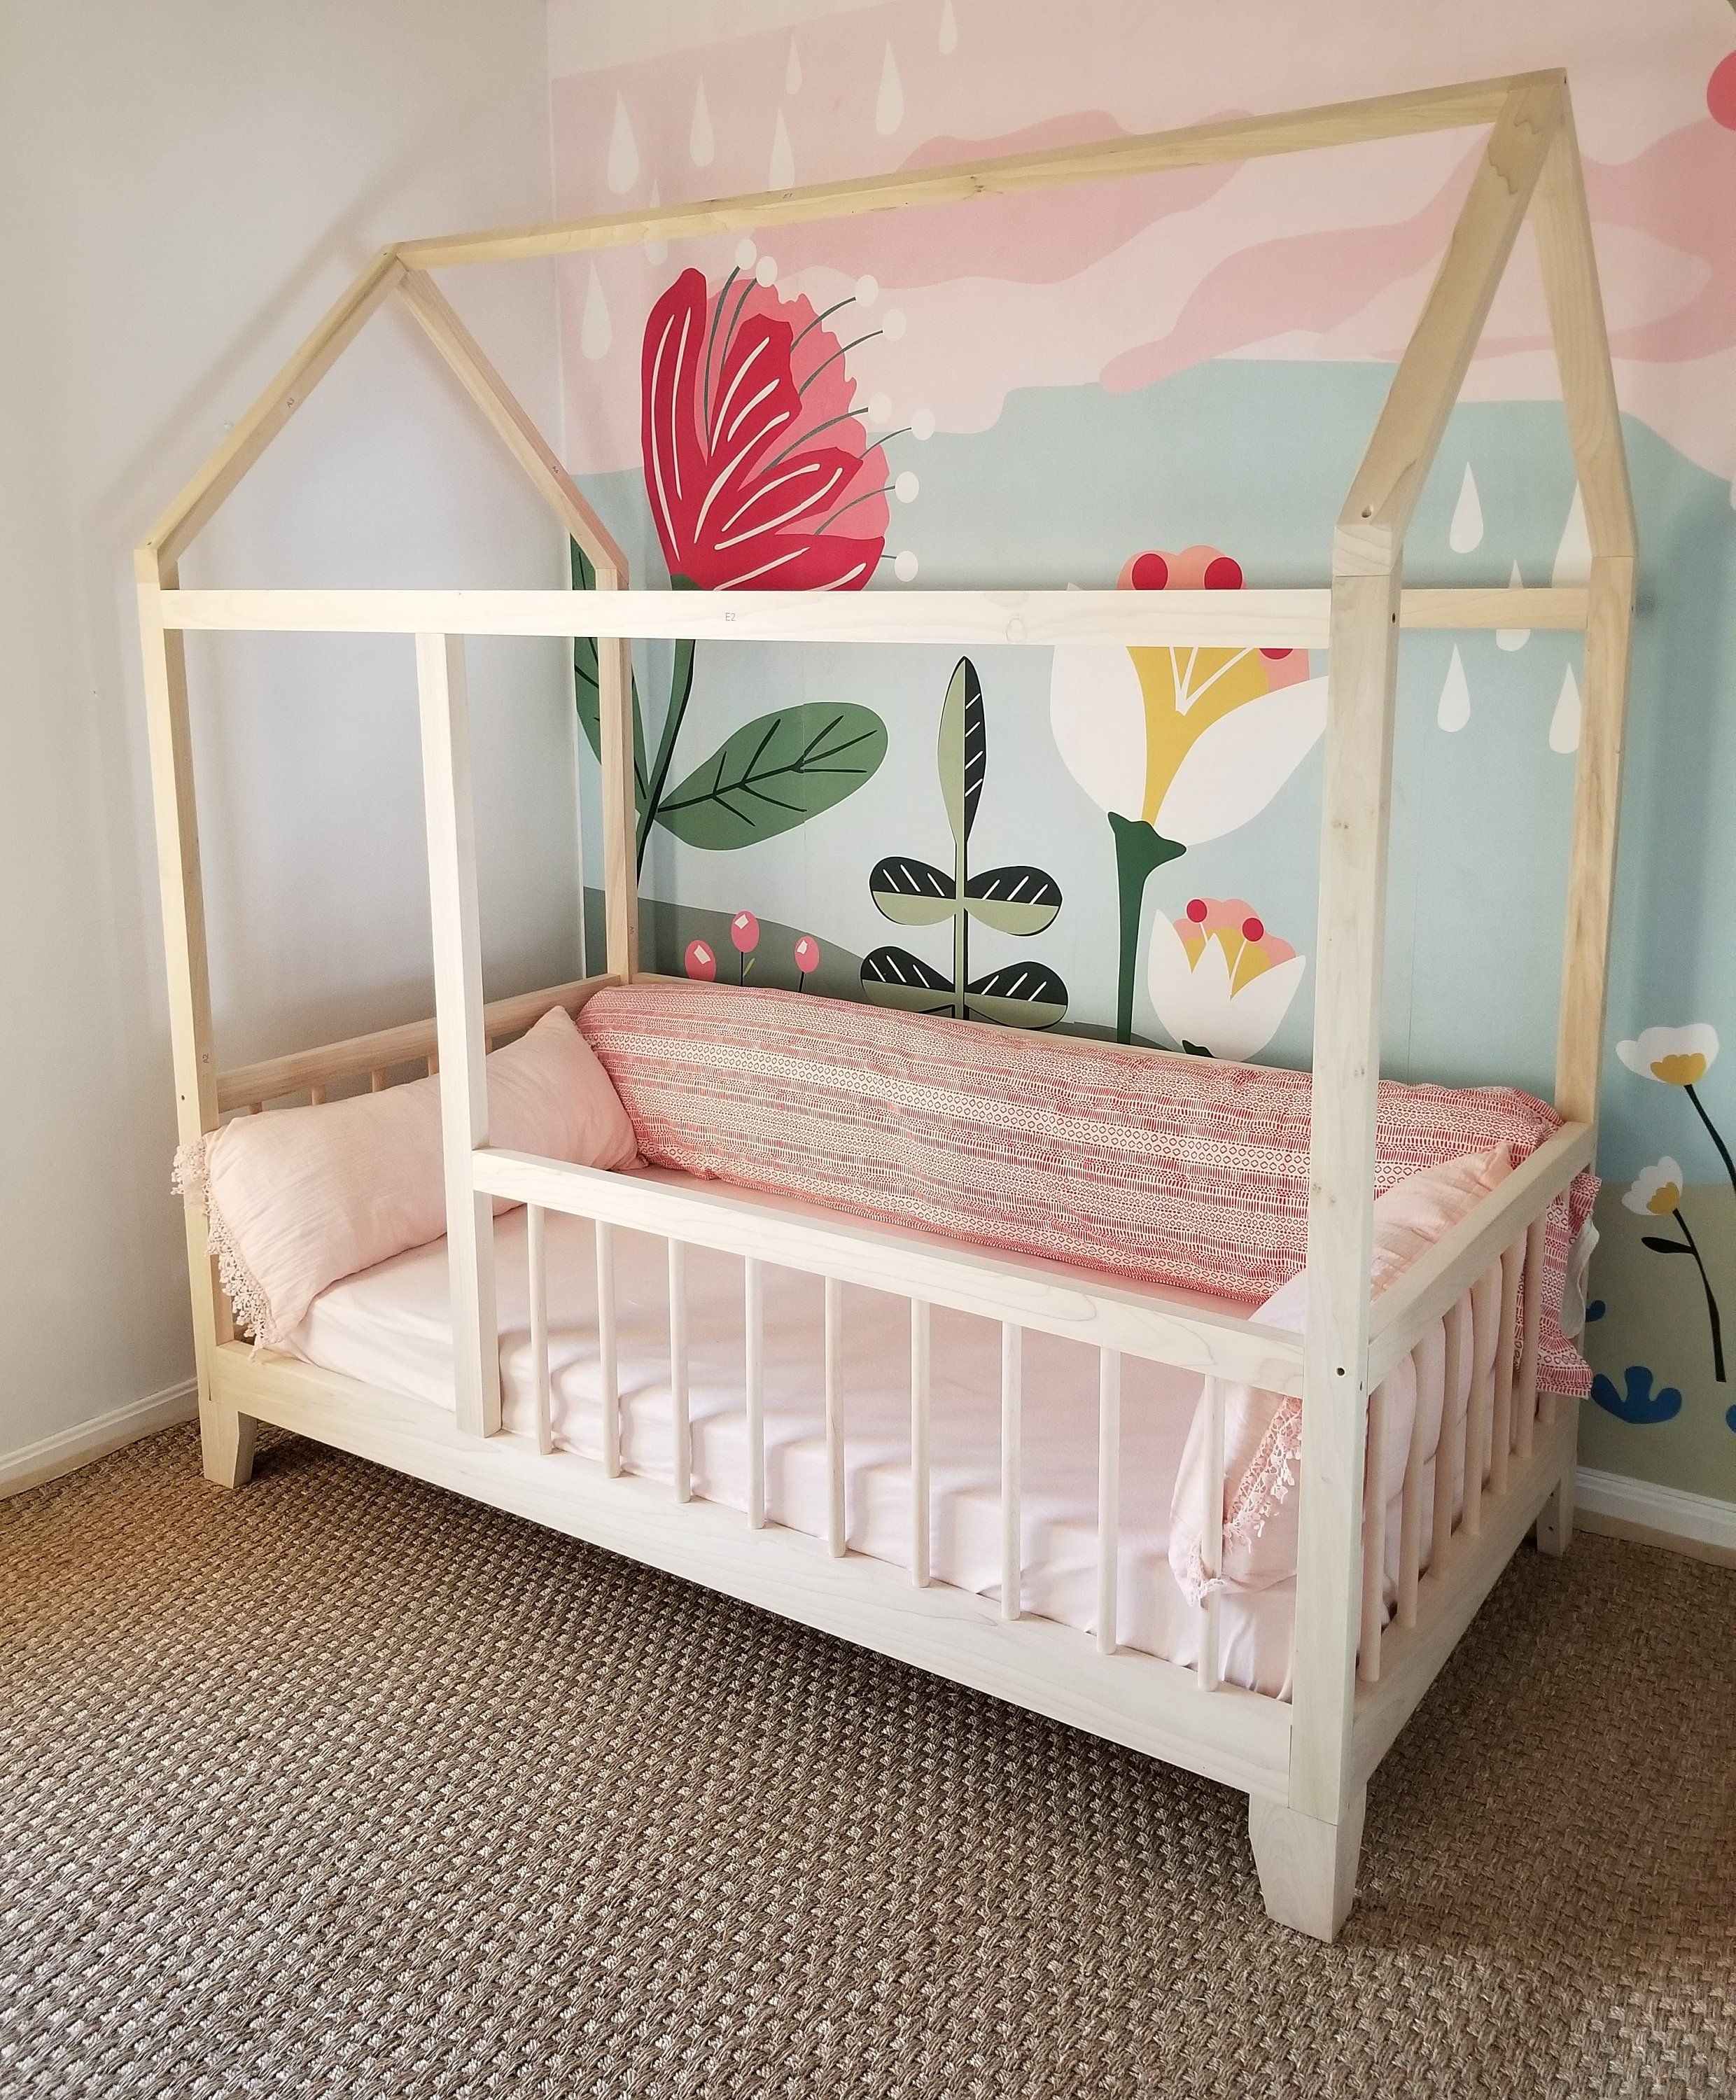 Raised Four Rail Hardwood Montessori Twin Full Toddler House Etsy Kids Bed Frames House Beds For Kids Diy Toddler Bed